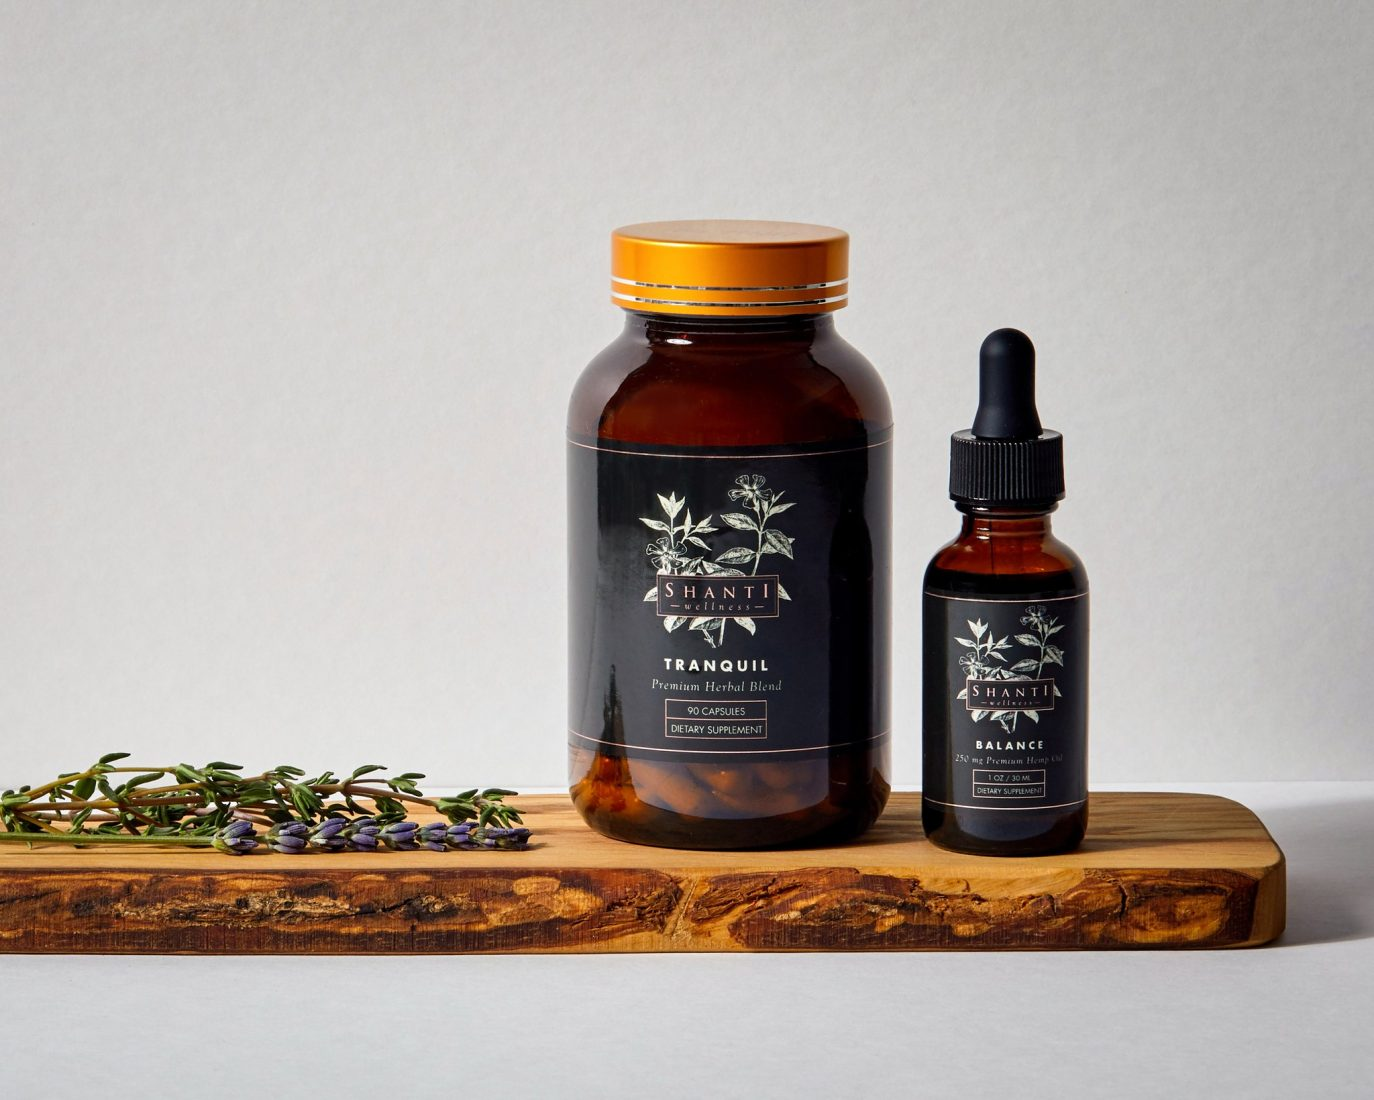 Old Meets New In Shanti Wellness Product Launch